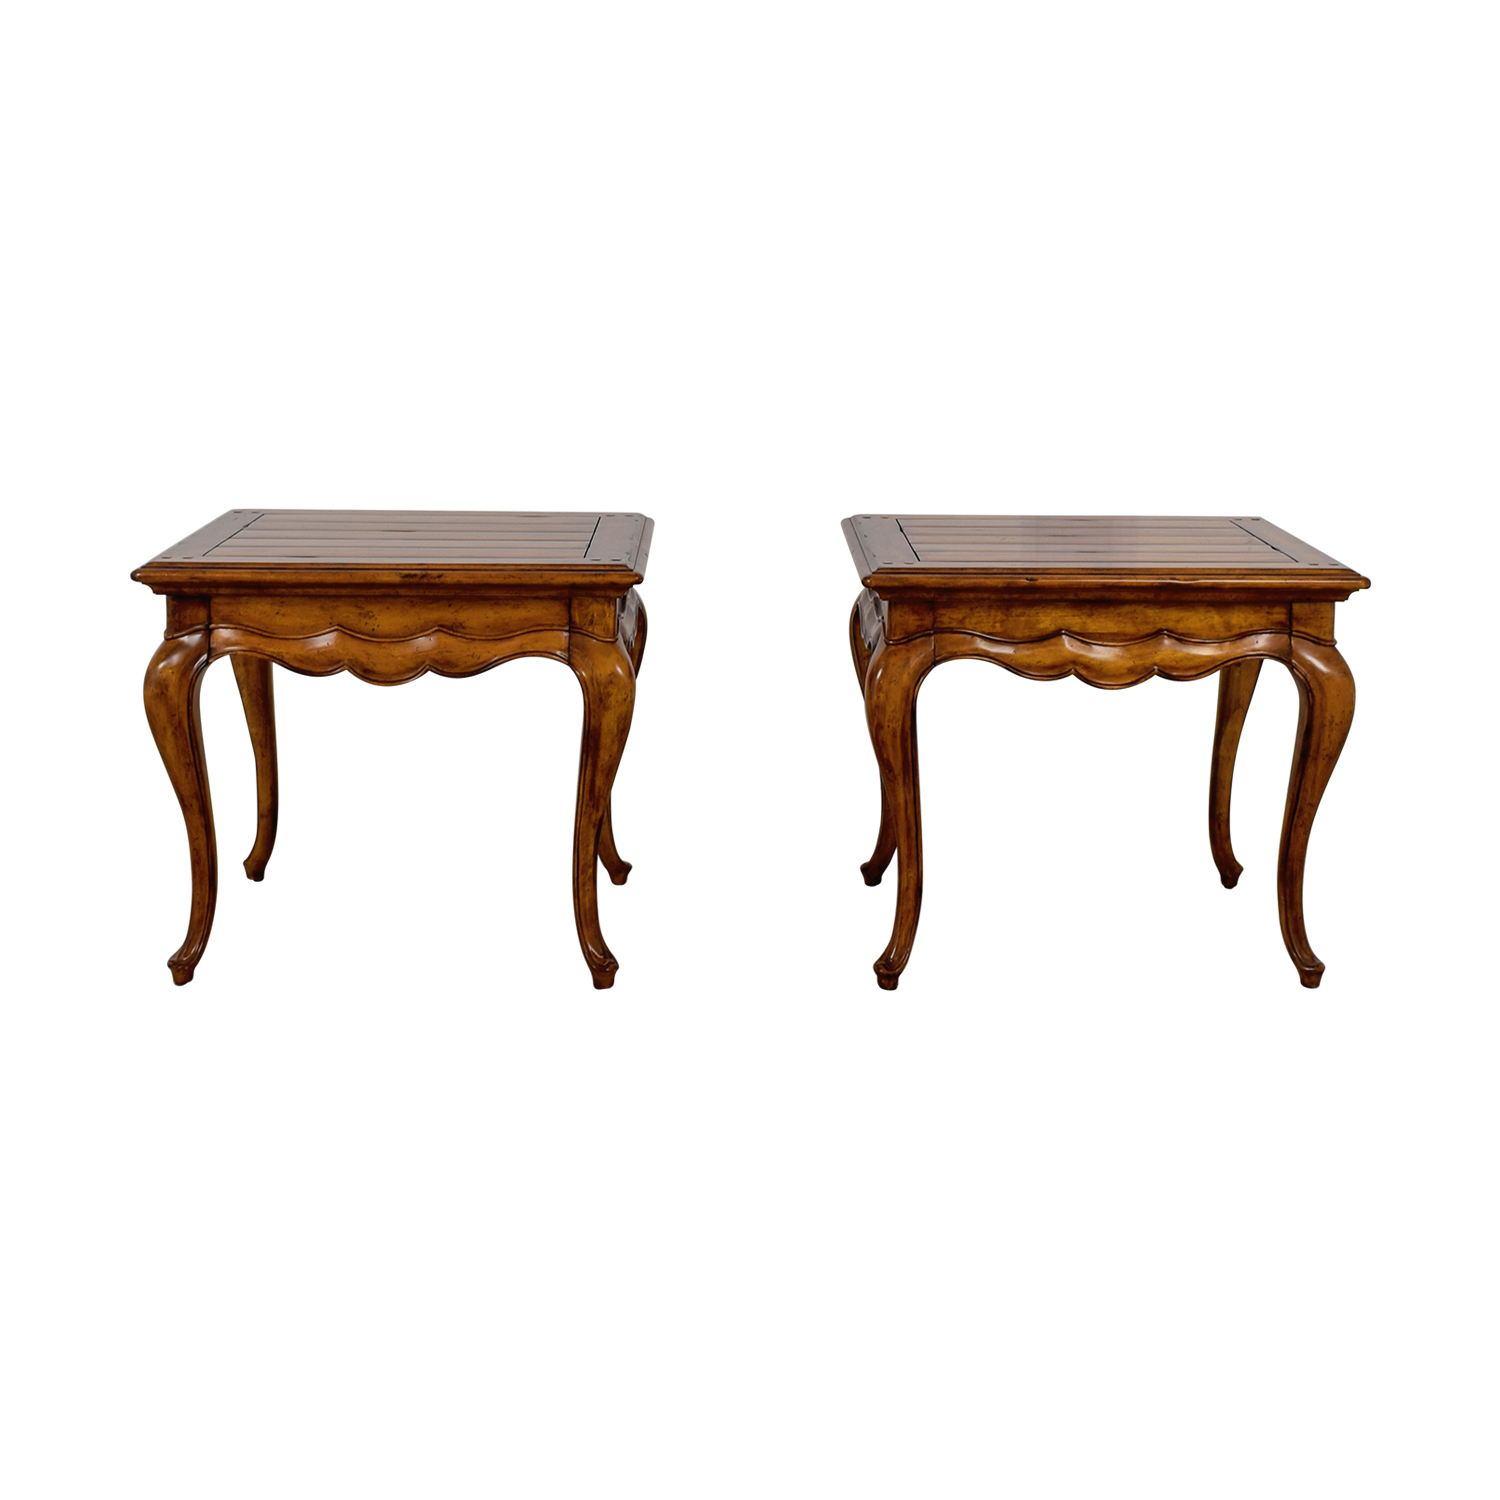 90 Off Thomasville Thomasville Dovetailed Wood End Tables Tables